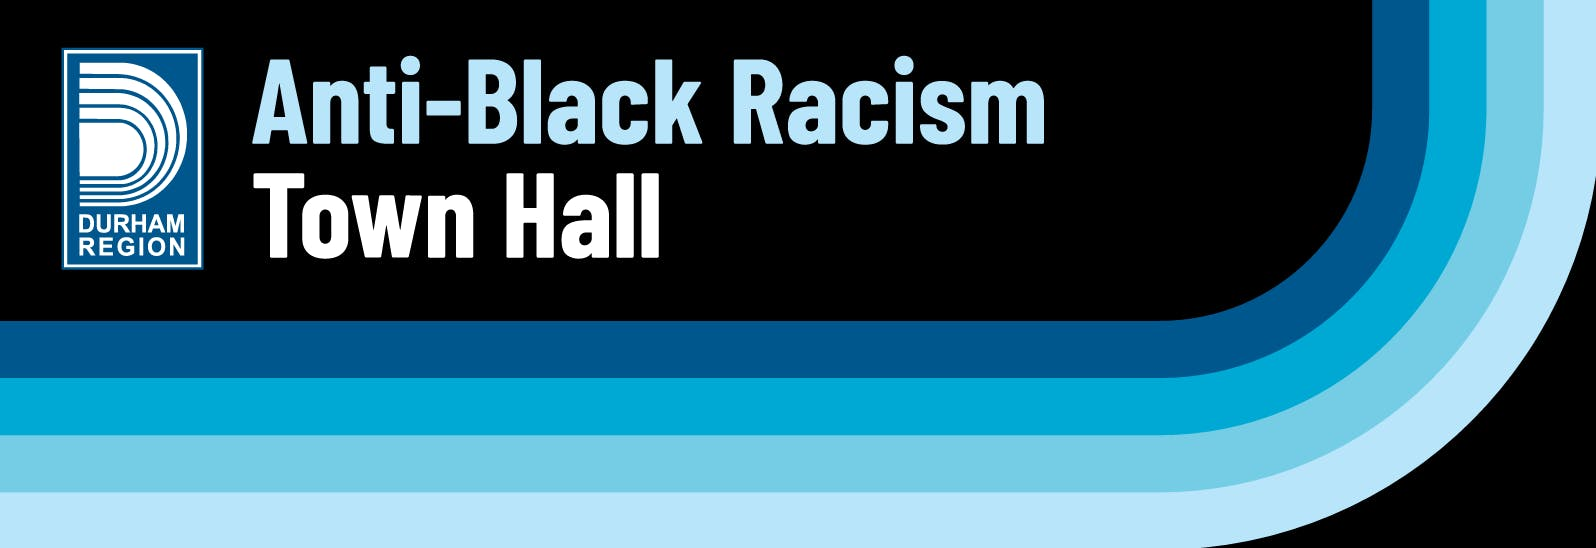 Regional Headquarters building with text overlayed reading: Anti-Black Racism Town Hall